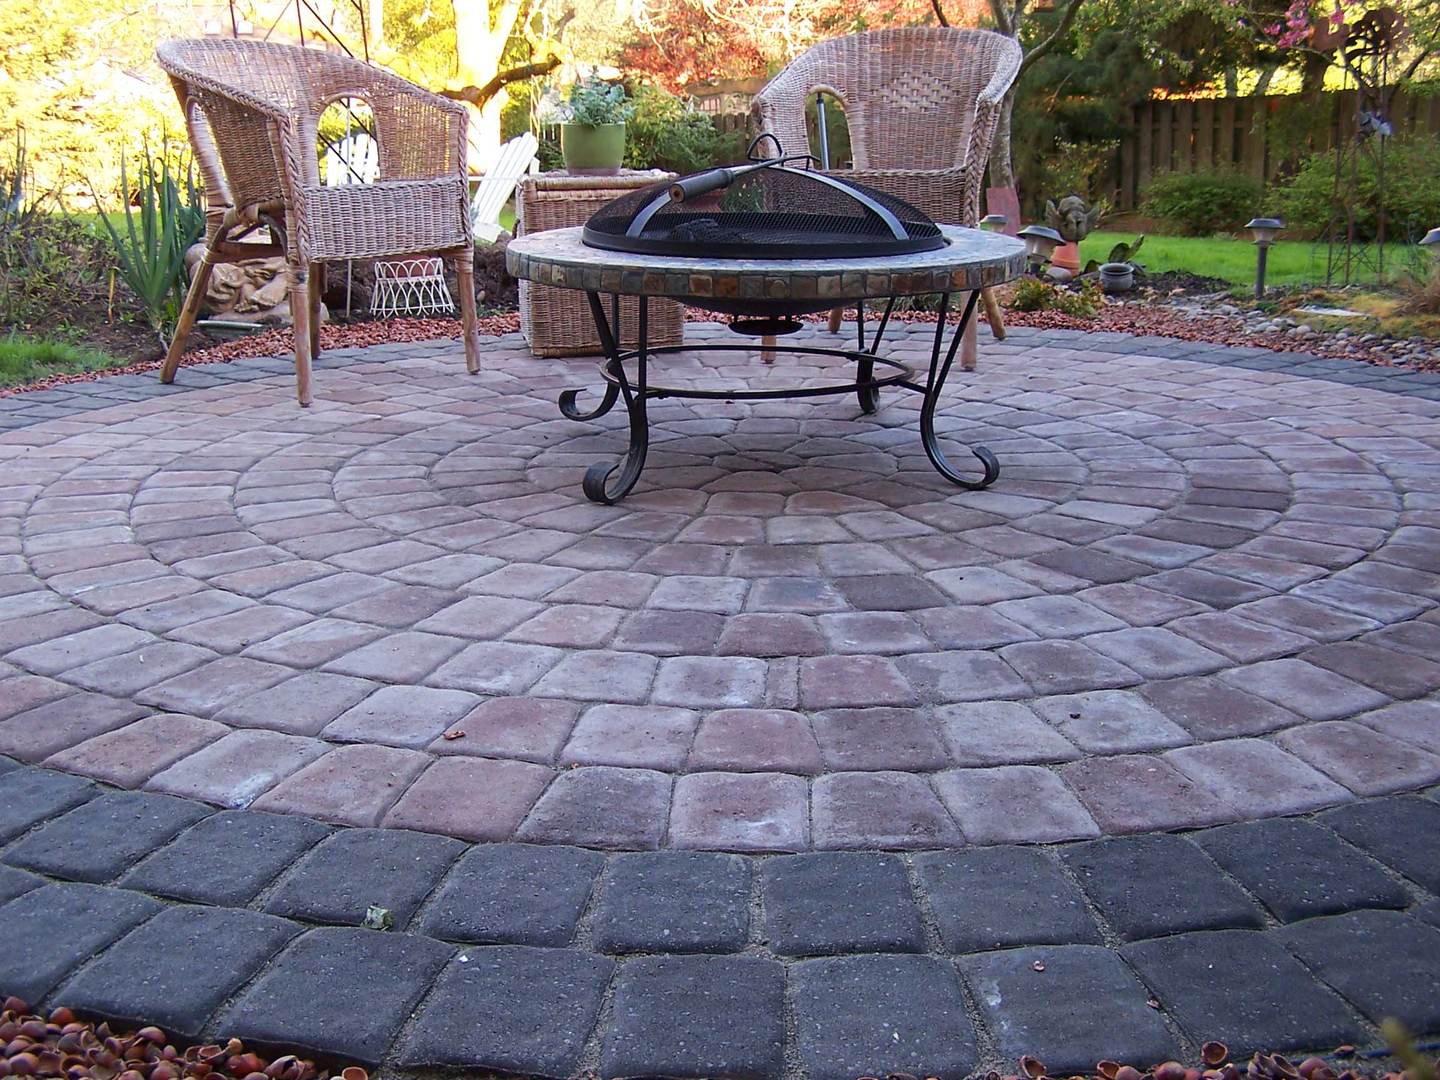 Patio Repairs In Jacksonville FL Friendly Professionals - Patio repairs